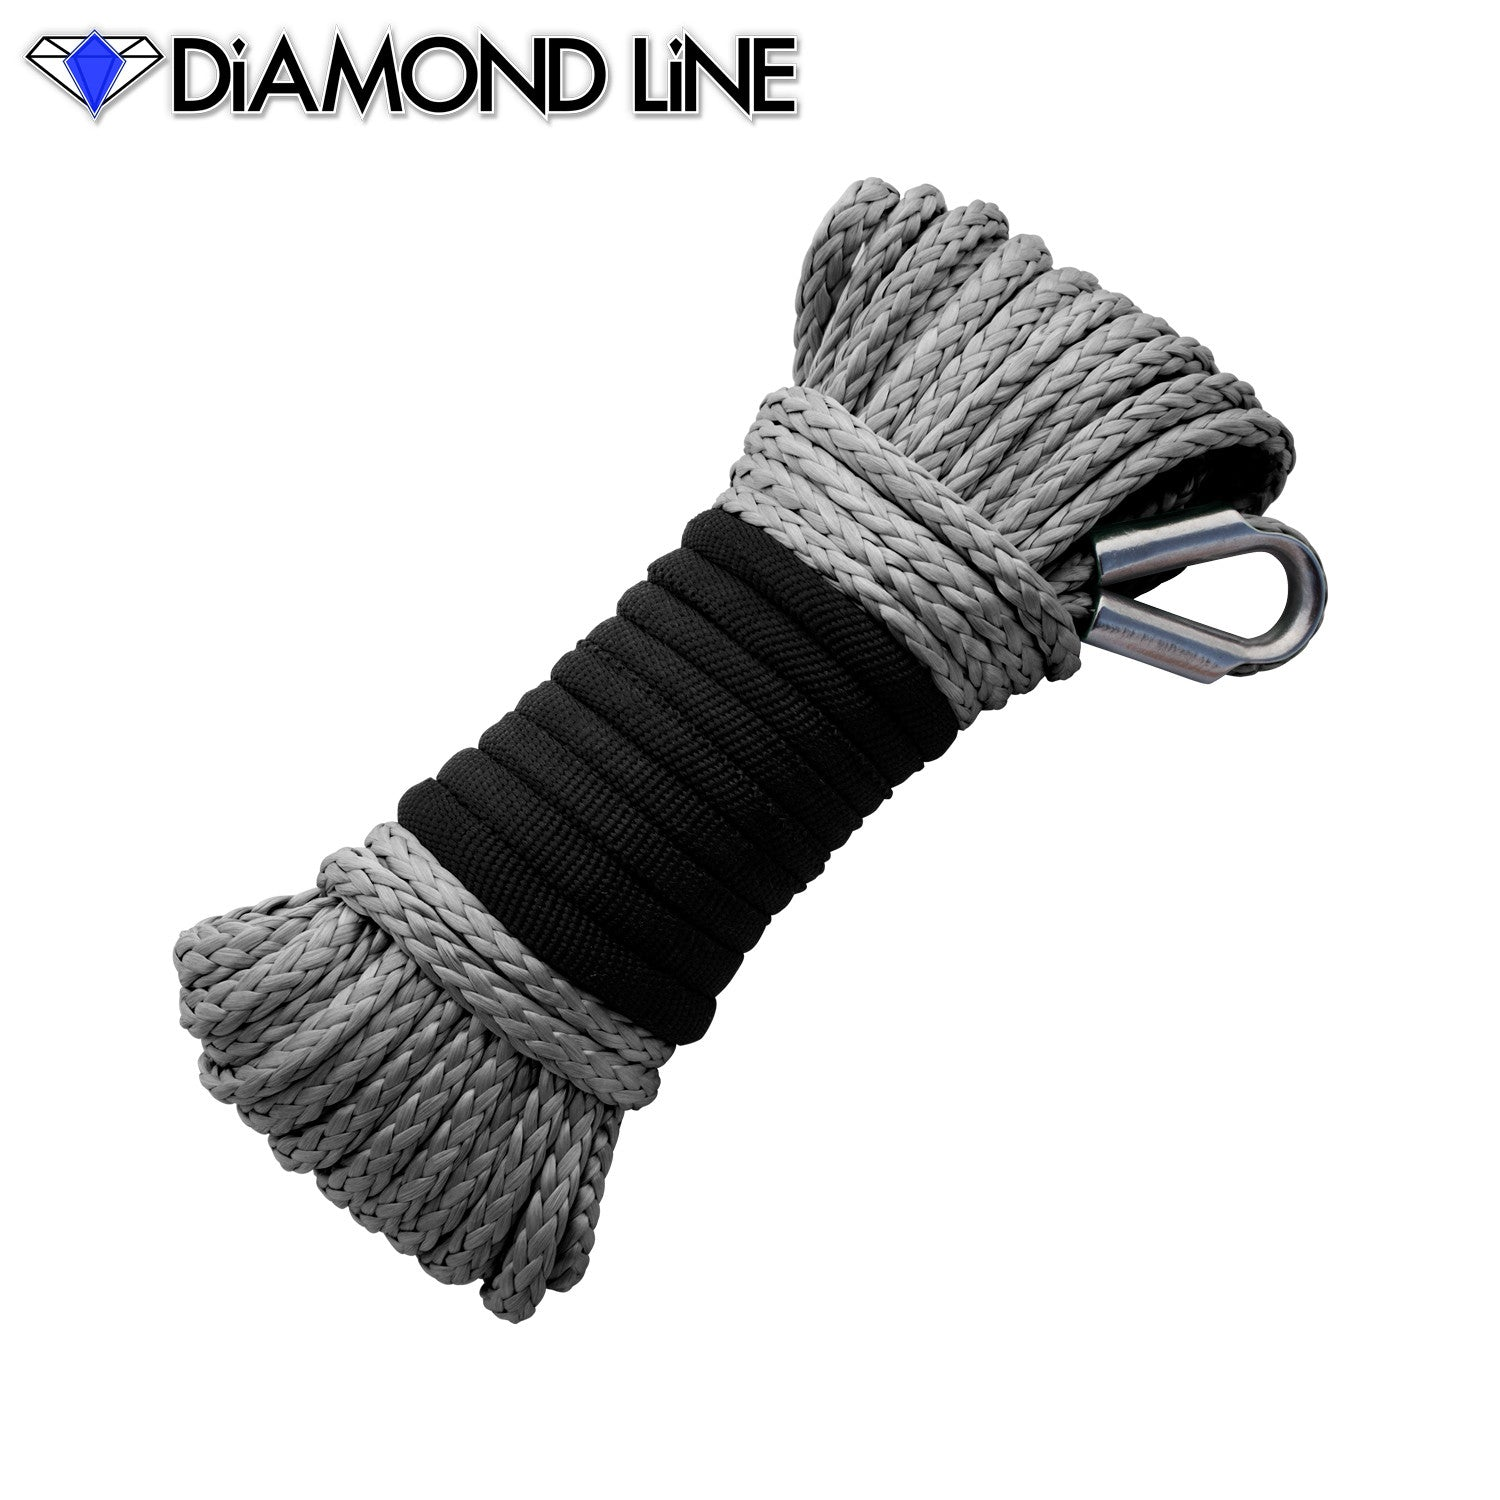 "3/16"" x 50' Diamond Line Winch Rope Mainline - Gray."